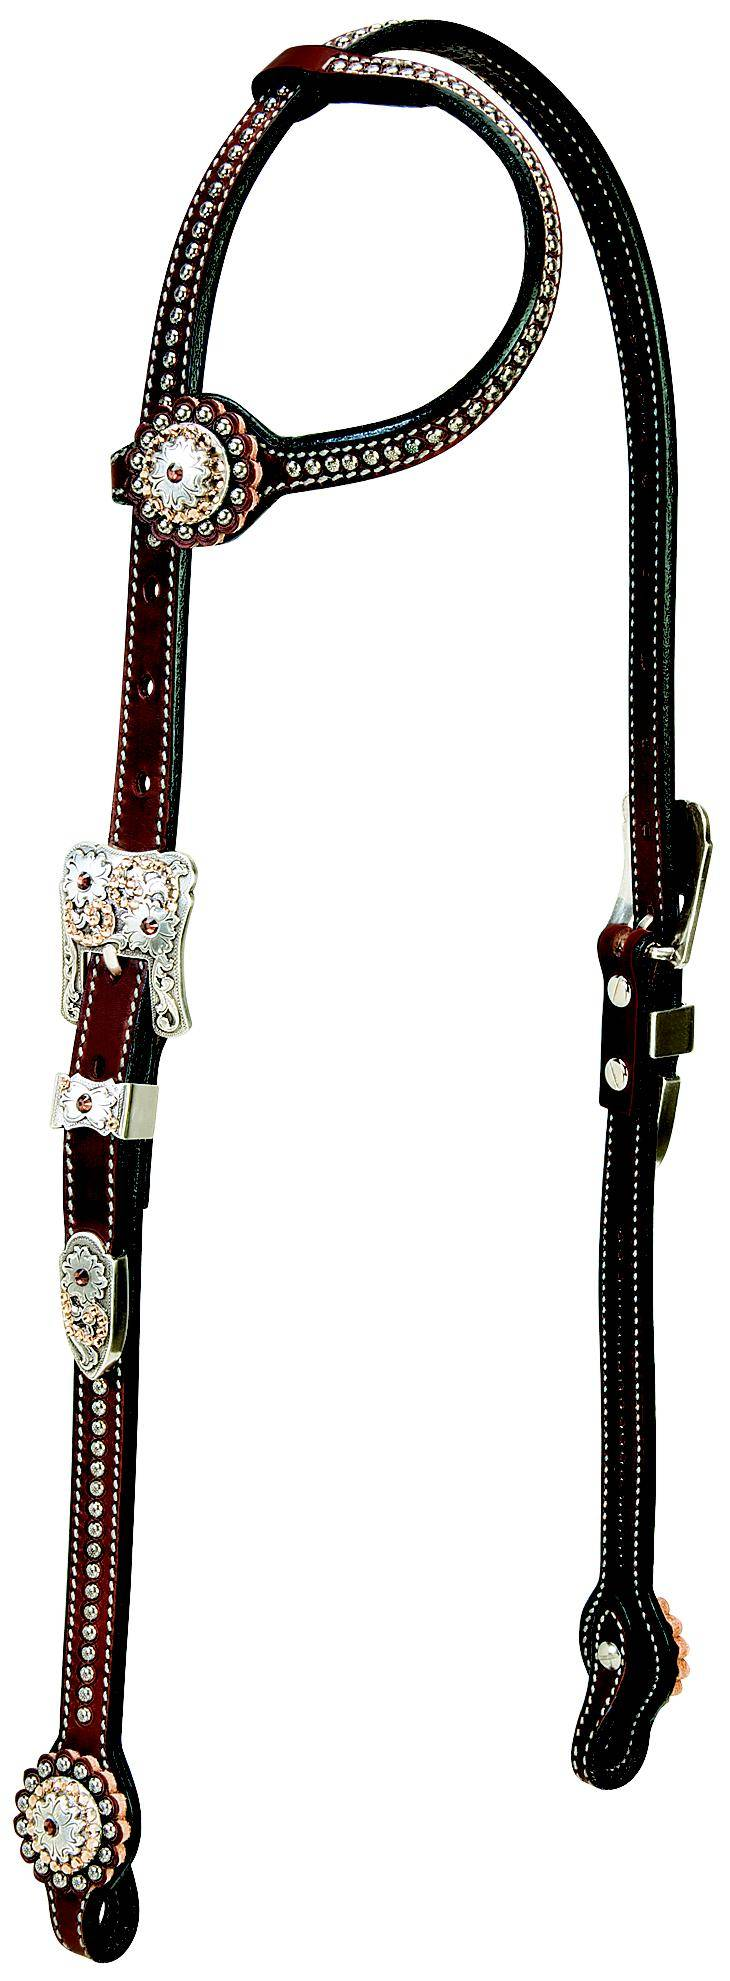 Weaver Leather Showtime Sliding Ear Headstall